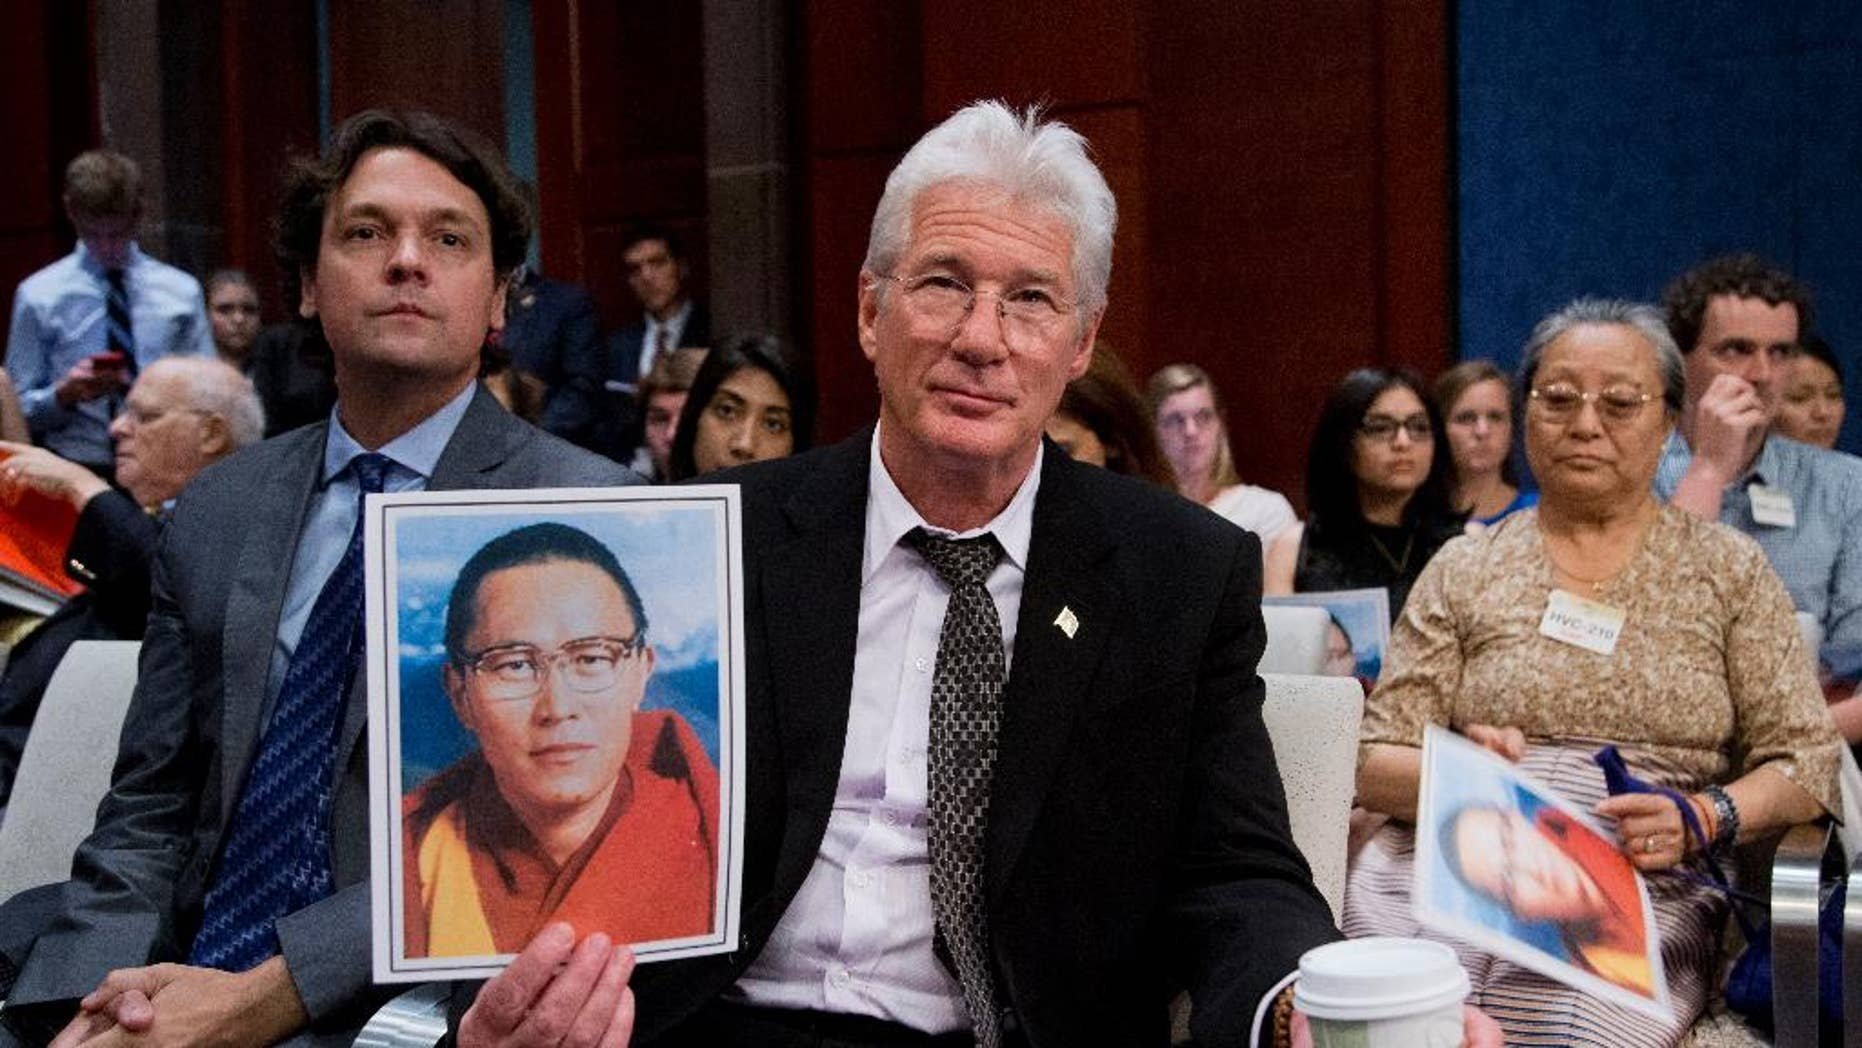 American actor and activist Richard Gere, with Matteo Mecacci, president of International Campaign for Tibet, left, holds a photo of Tulku Tenzin Delek Rinpoche, one of the most respected and revered Tibetan lamas, who passed away in custody in a Chinese prison on July 12, during a hearing on Tibet with the Tom Lantos Human Rights Commission, Tuesday, July 14, 2015, on Capitol Hill in Washington.   (AP Photo/Manuel Balce Ceneta)